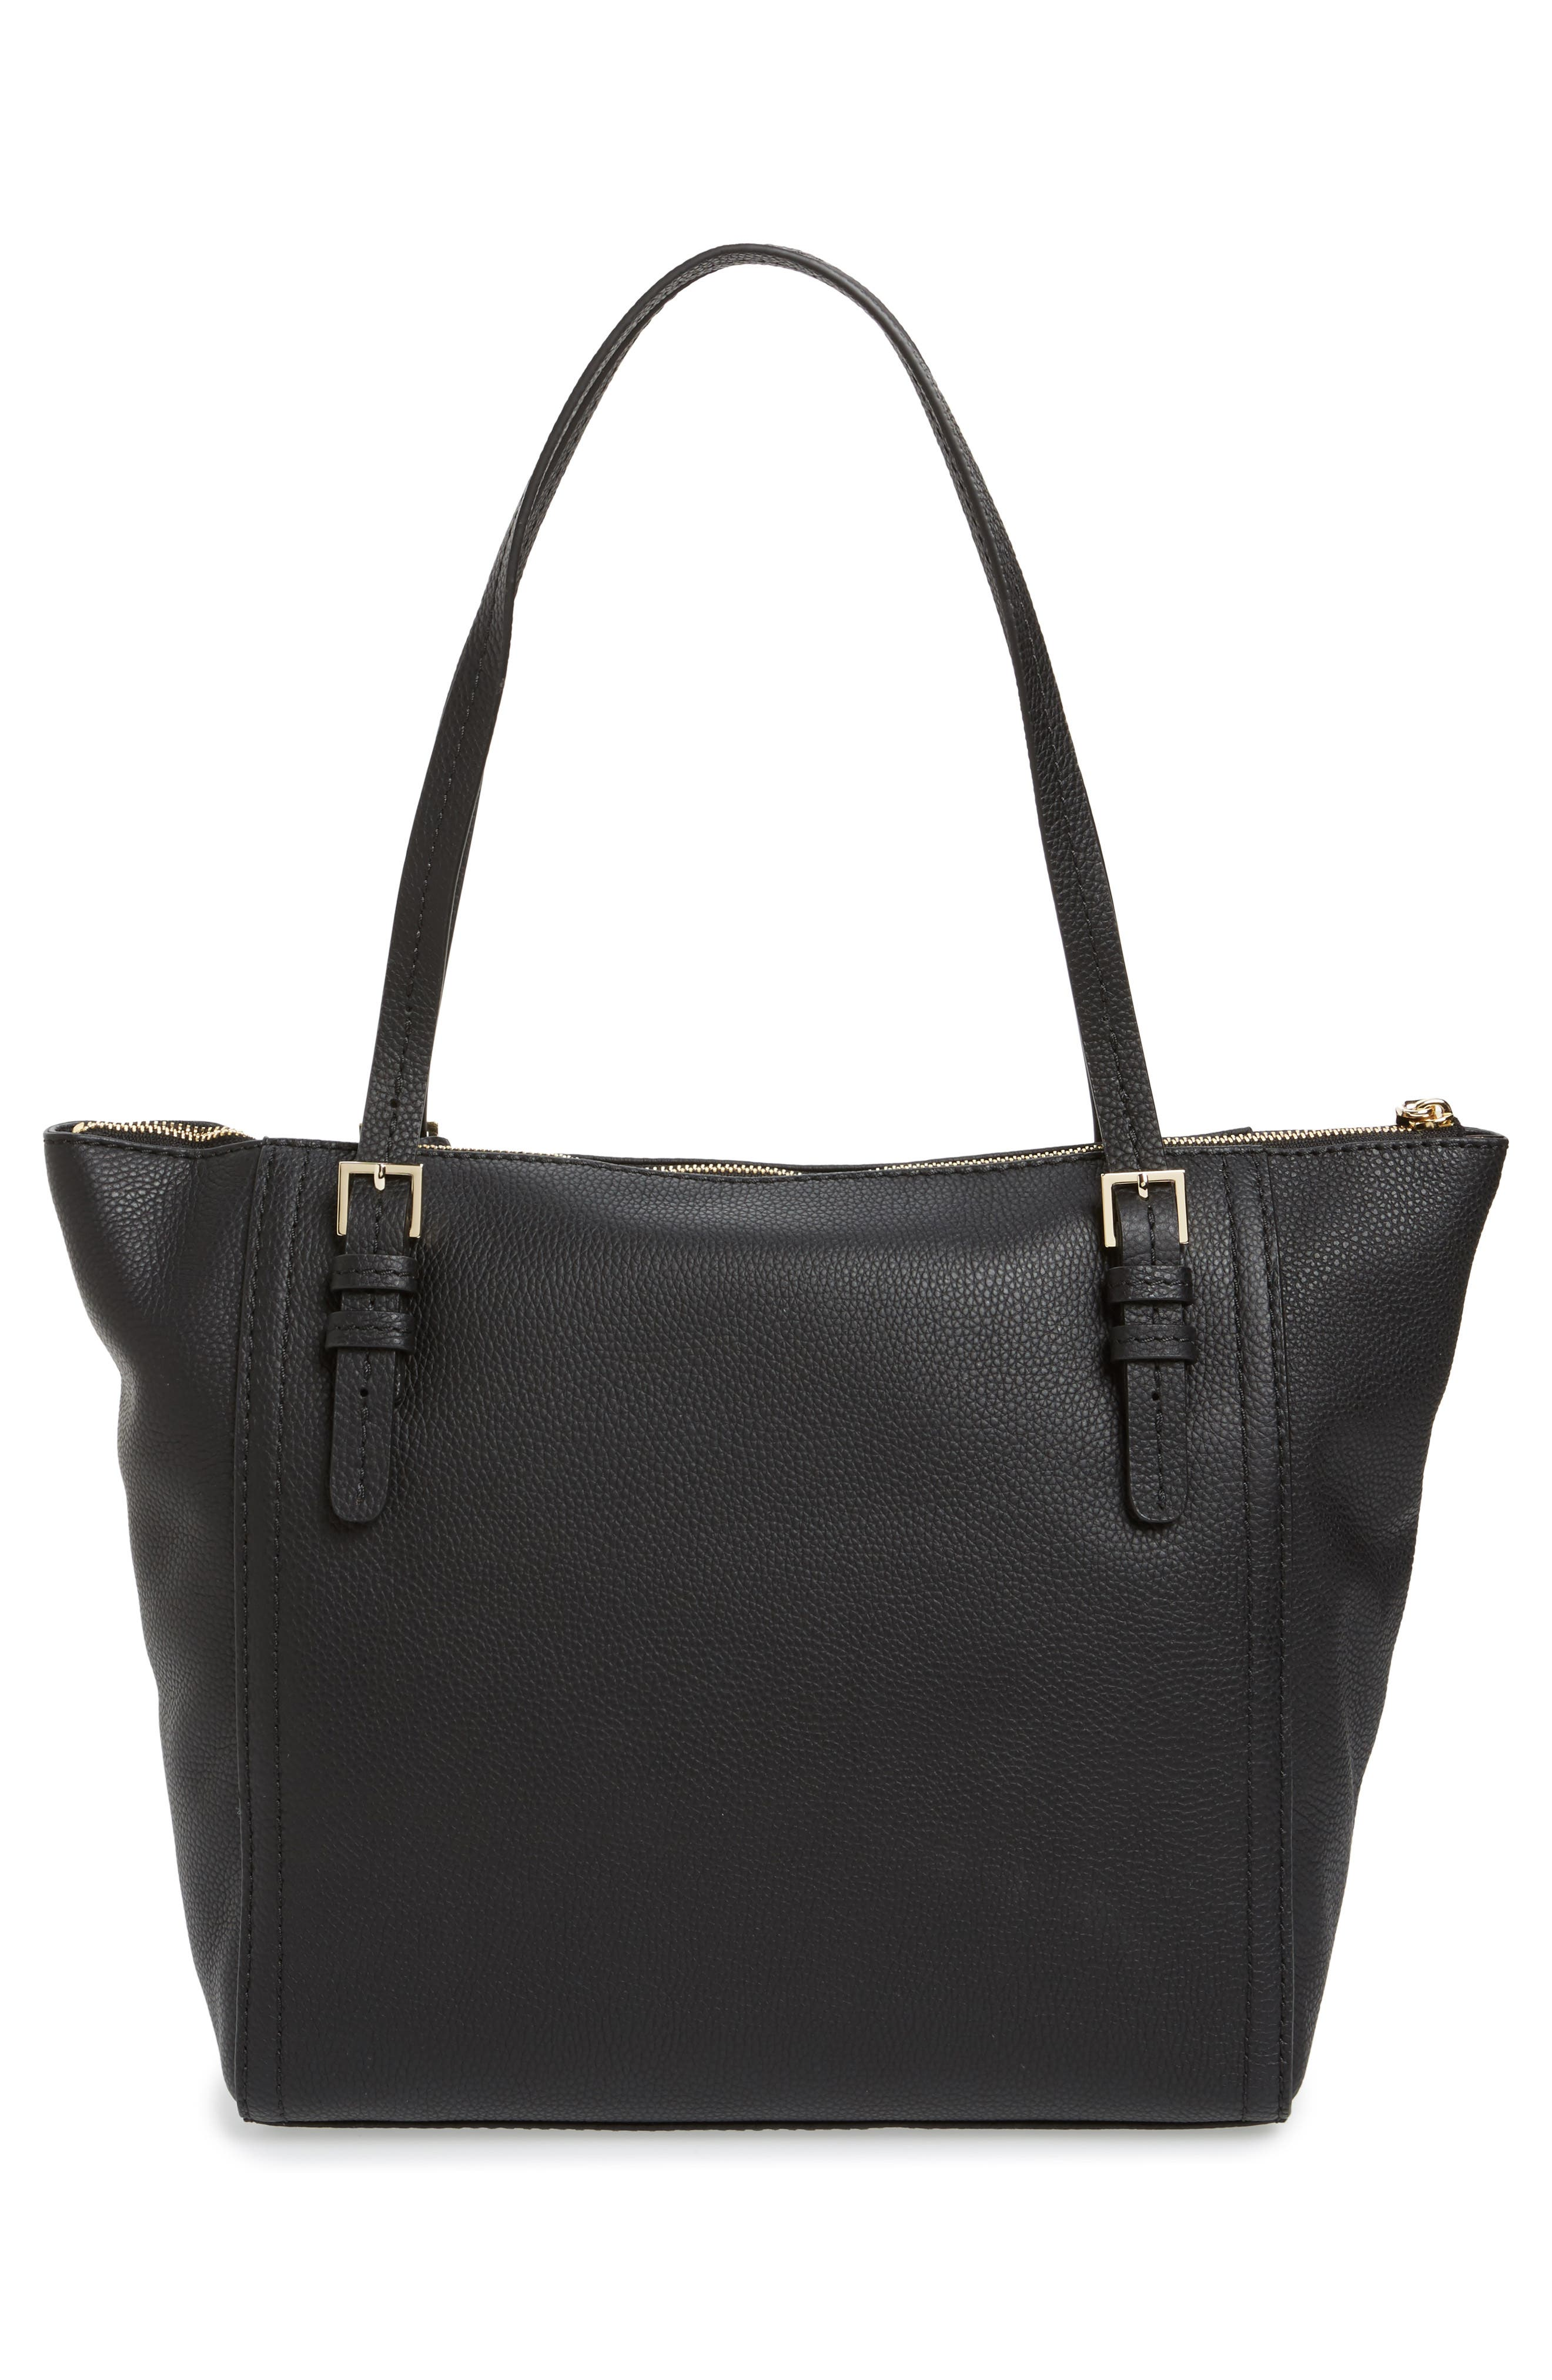 orchard street - maya leather tote,                             Alternate thumbnail 3, color,                             001